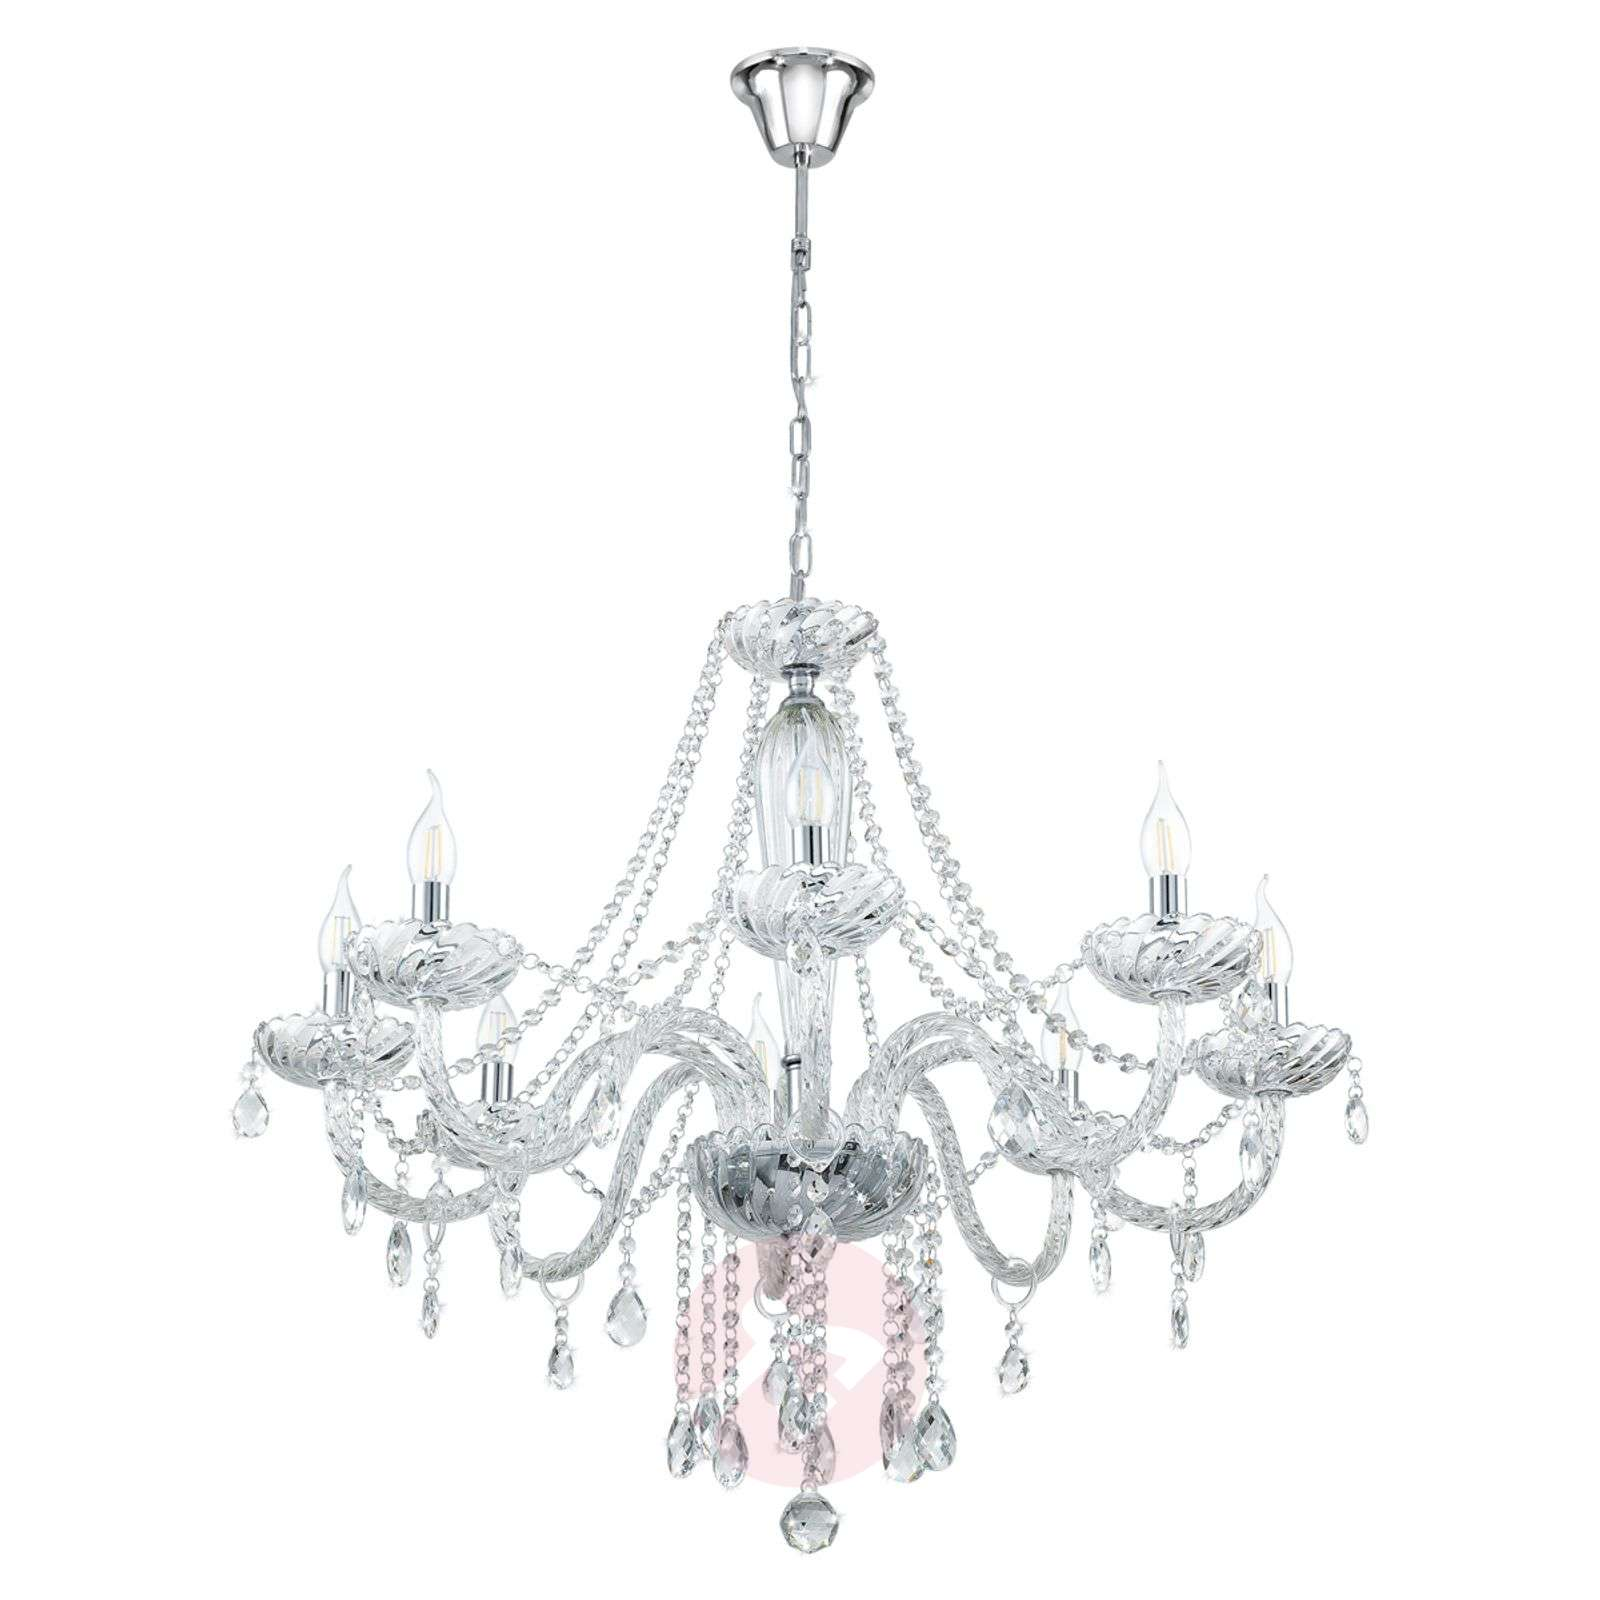 decor in black luxury crystal from decorative chandelier chandeliers lighting candle and item edison rustic lights white